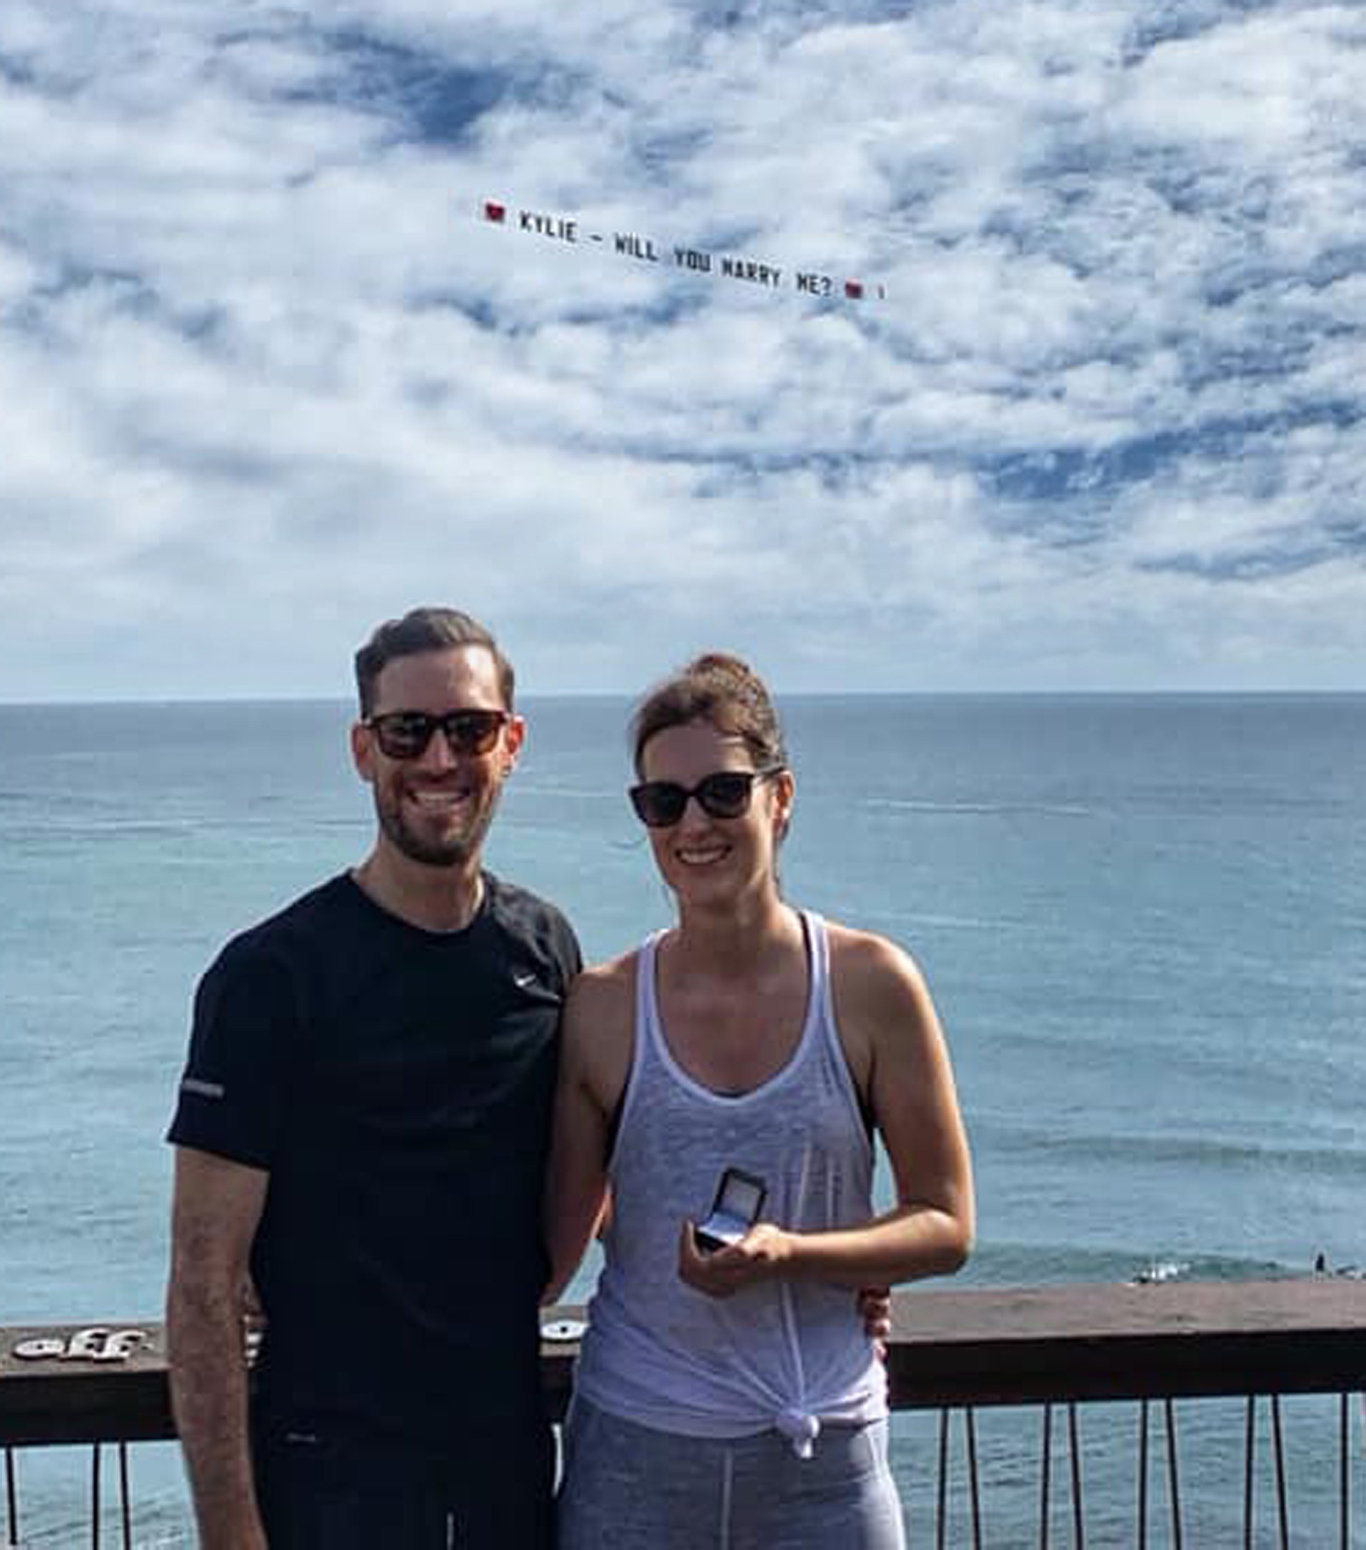 Kylie McMahon got the surprise of a lifetime on Sunday morning when her boyfriend, Jared, popped the question at Moffat Beach.